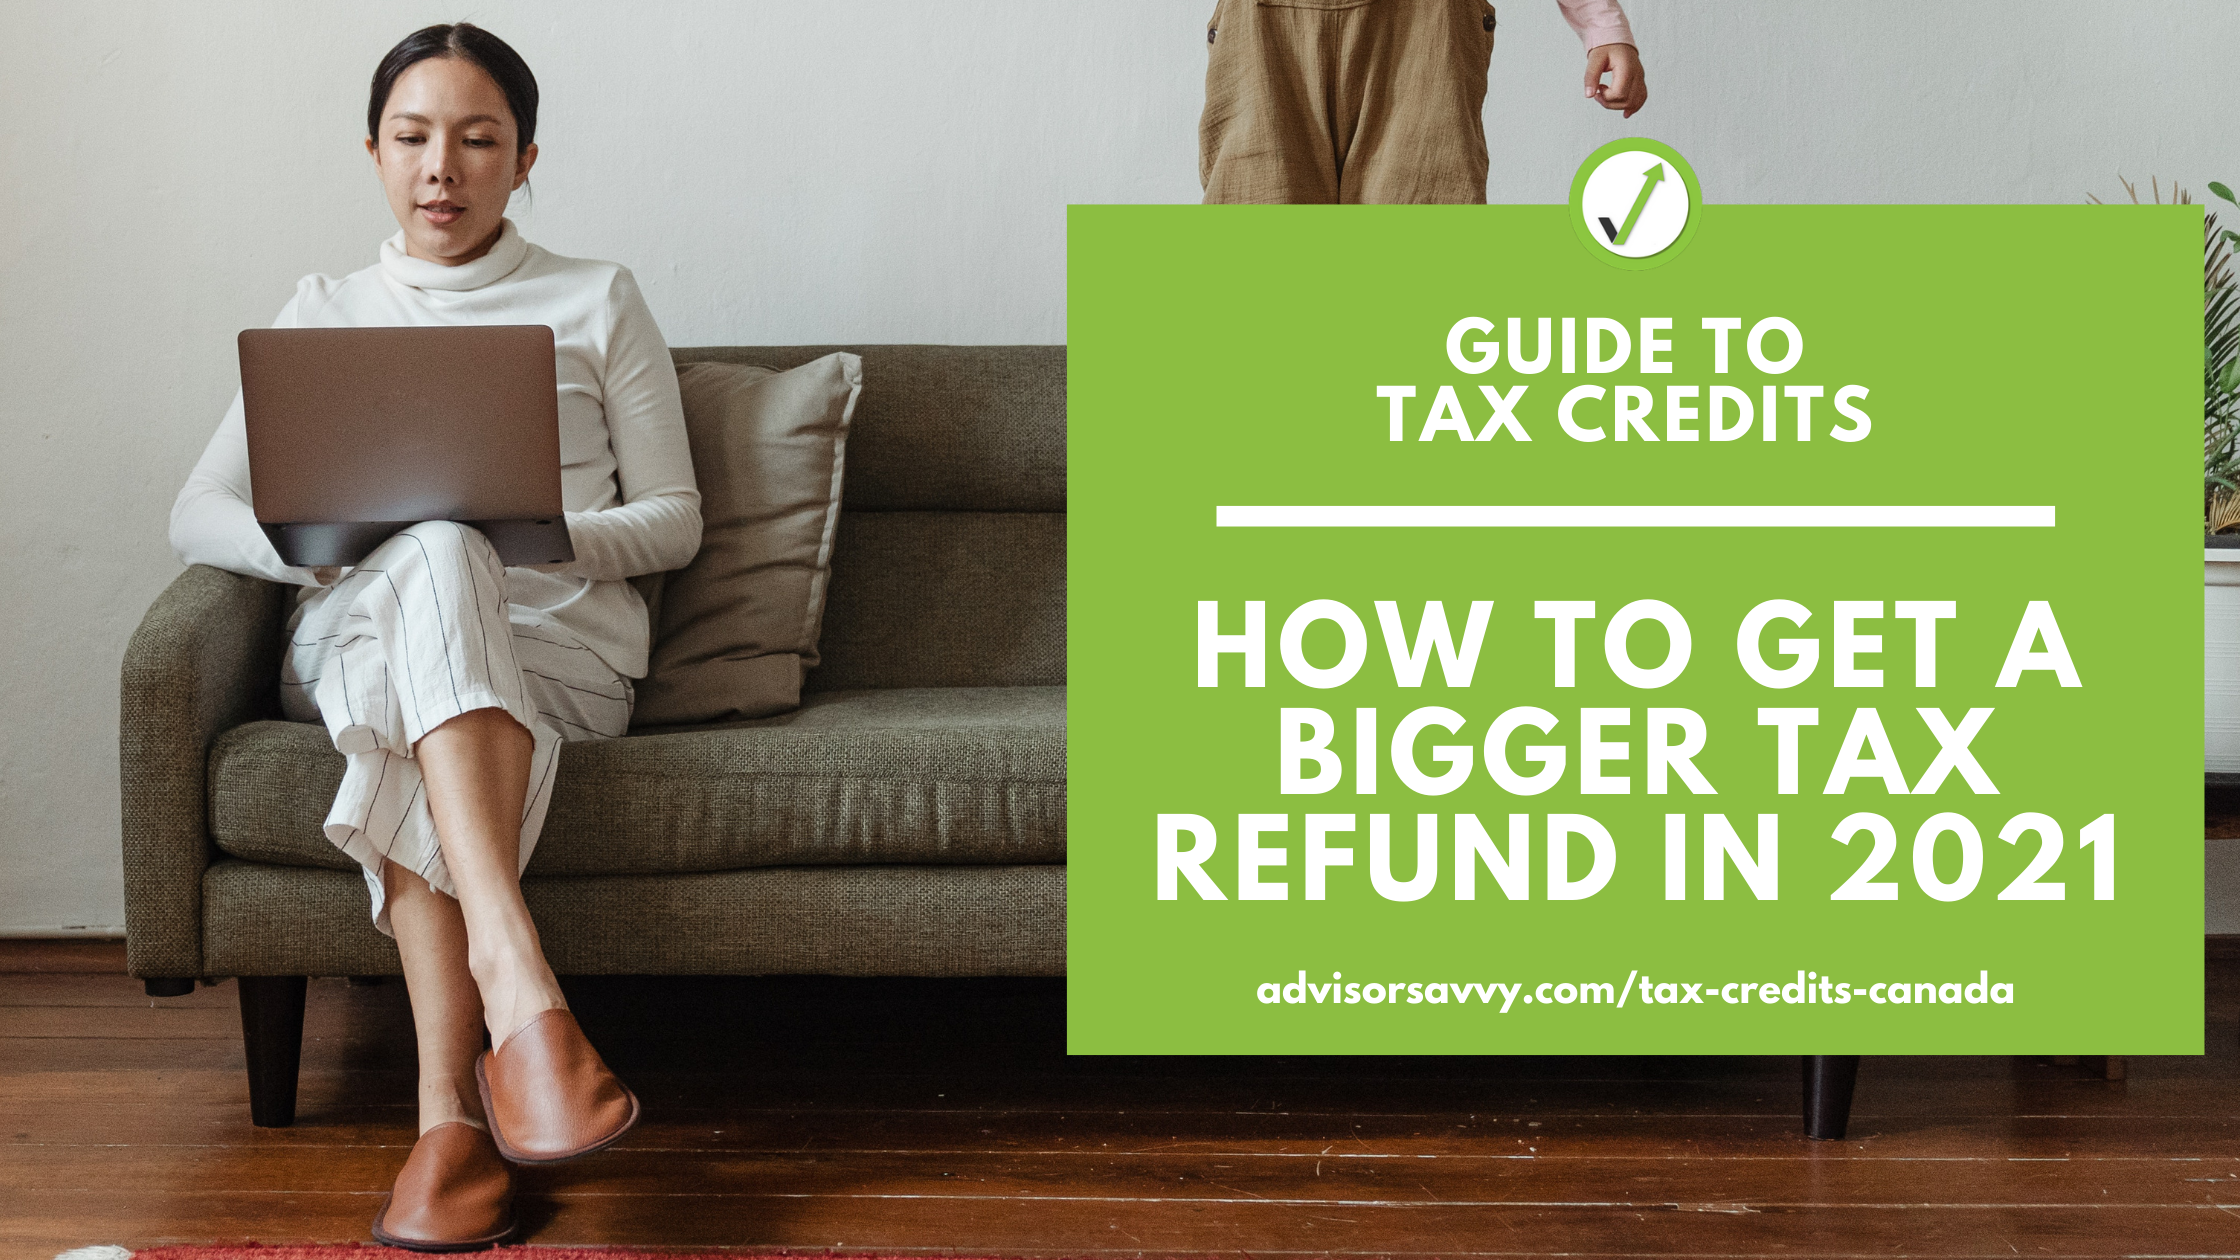 Guide to tax credits: How to get a bigger tax refund